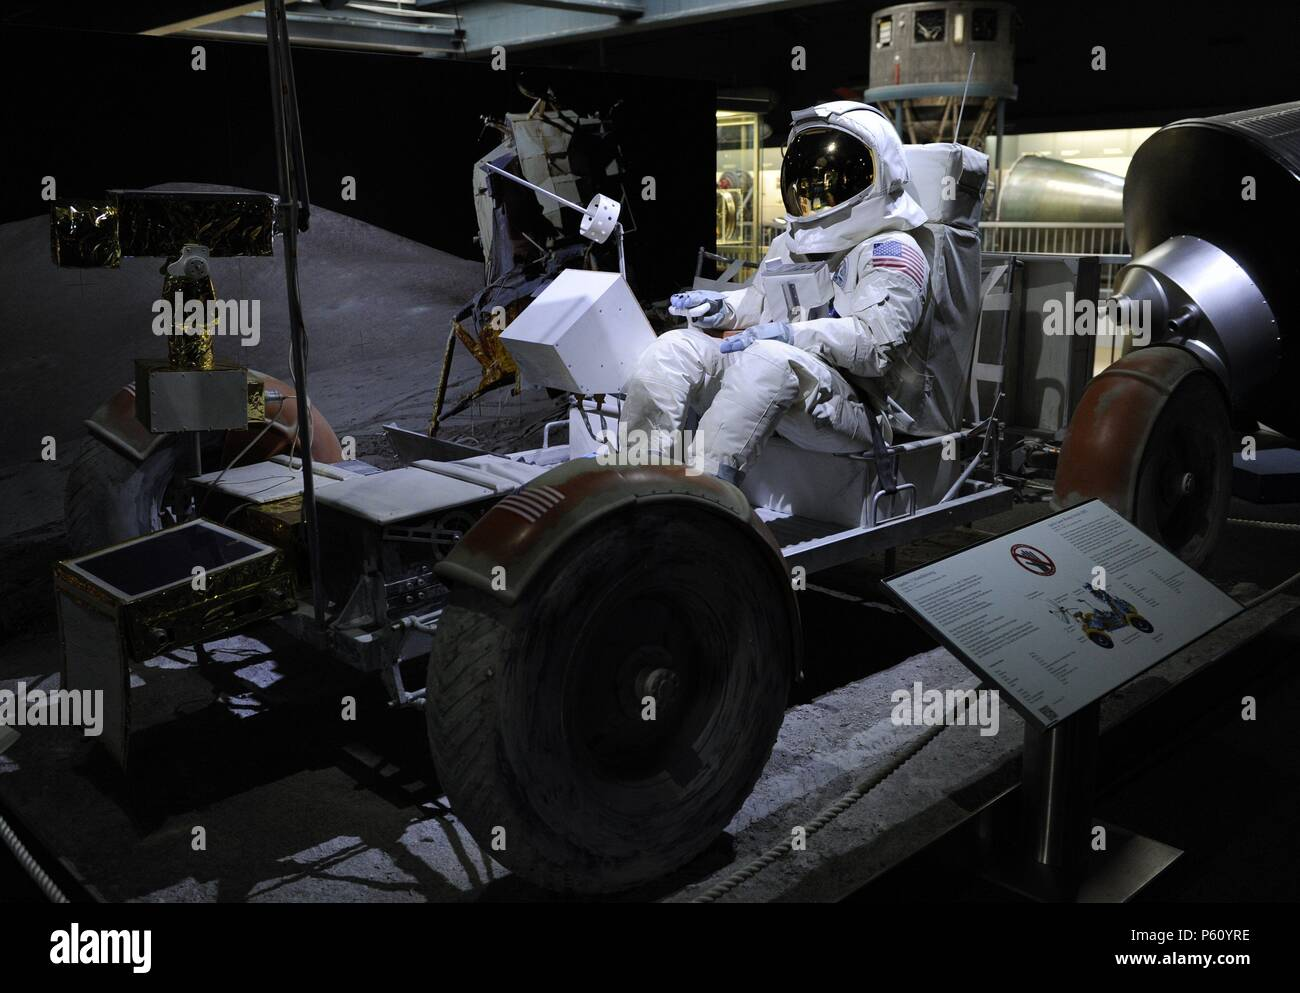 Lunar Roving Vehicle (LRV) or lunar rover was a battery-powered four-wheeled rover used on the Moon in the last three missions of the American Apollo program, during 1971 and 1972. Deutches Museum. Munich. Germany. - Stock Image